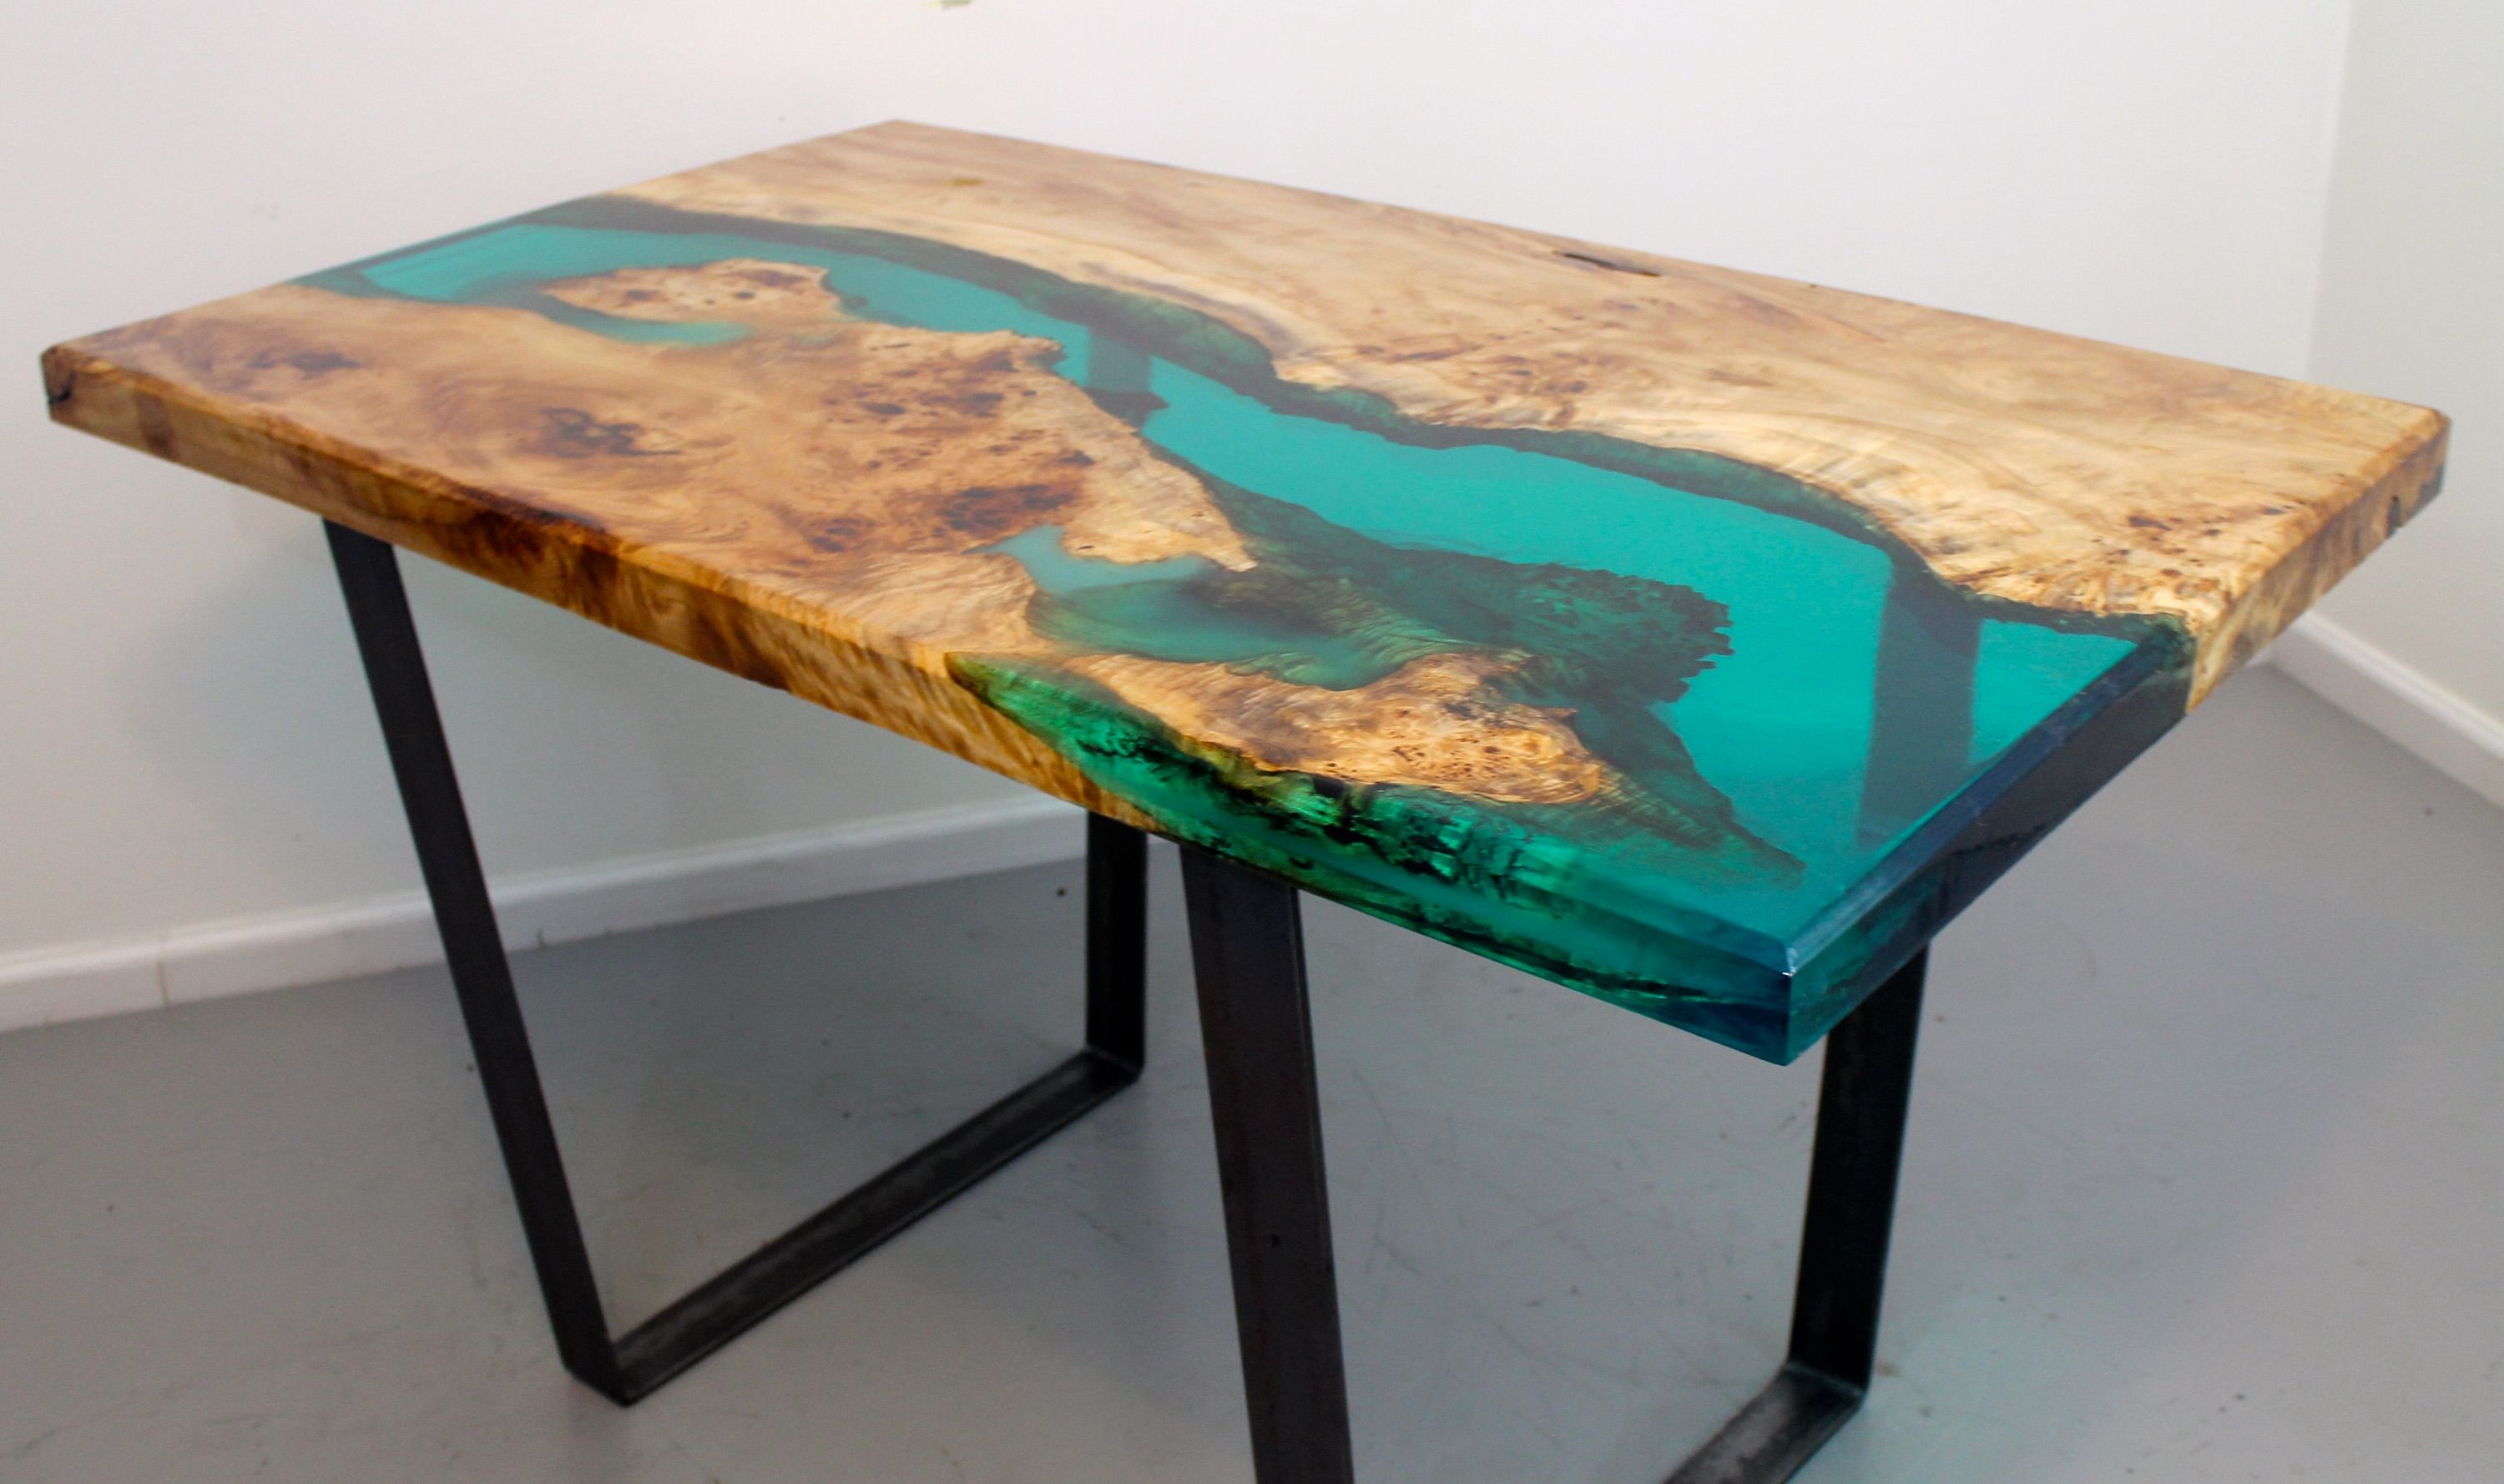 wood table projects to try wood resin table epoxy. Black Bedroom Furniture Sets. Home Design Ideas